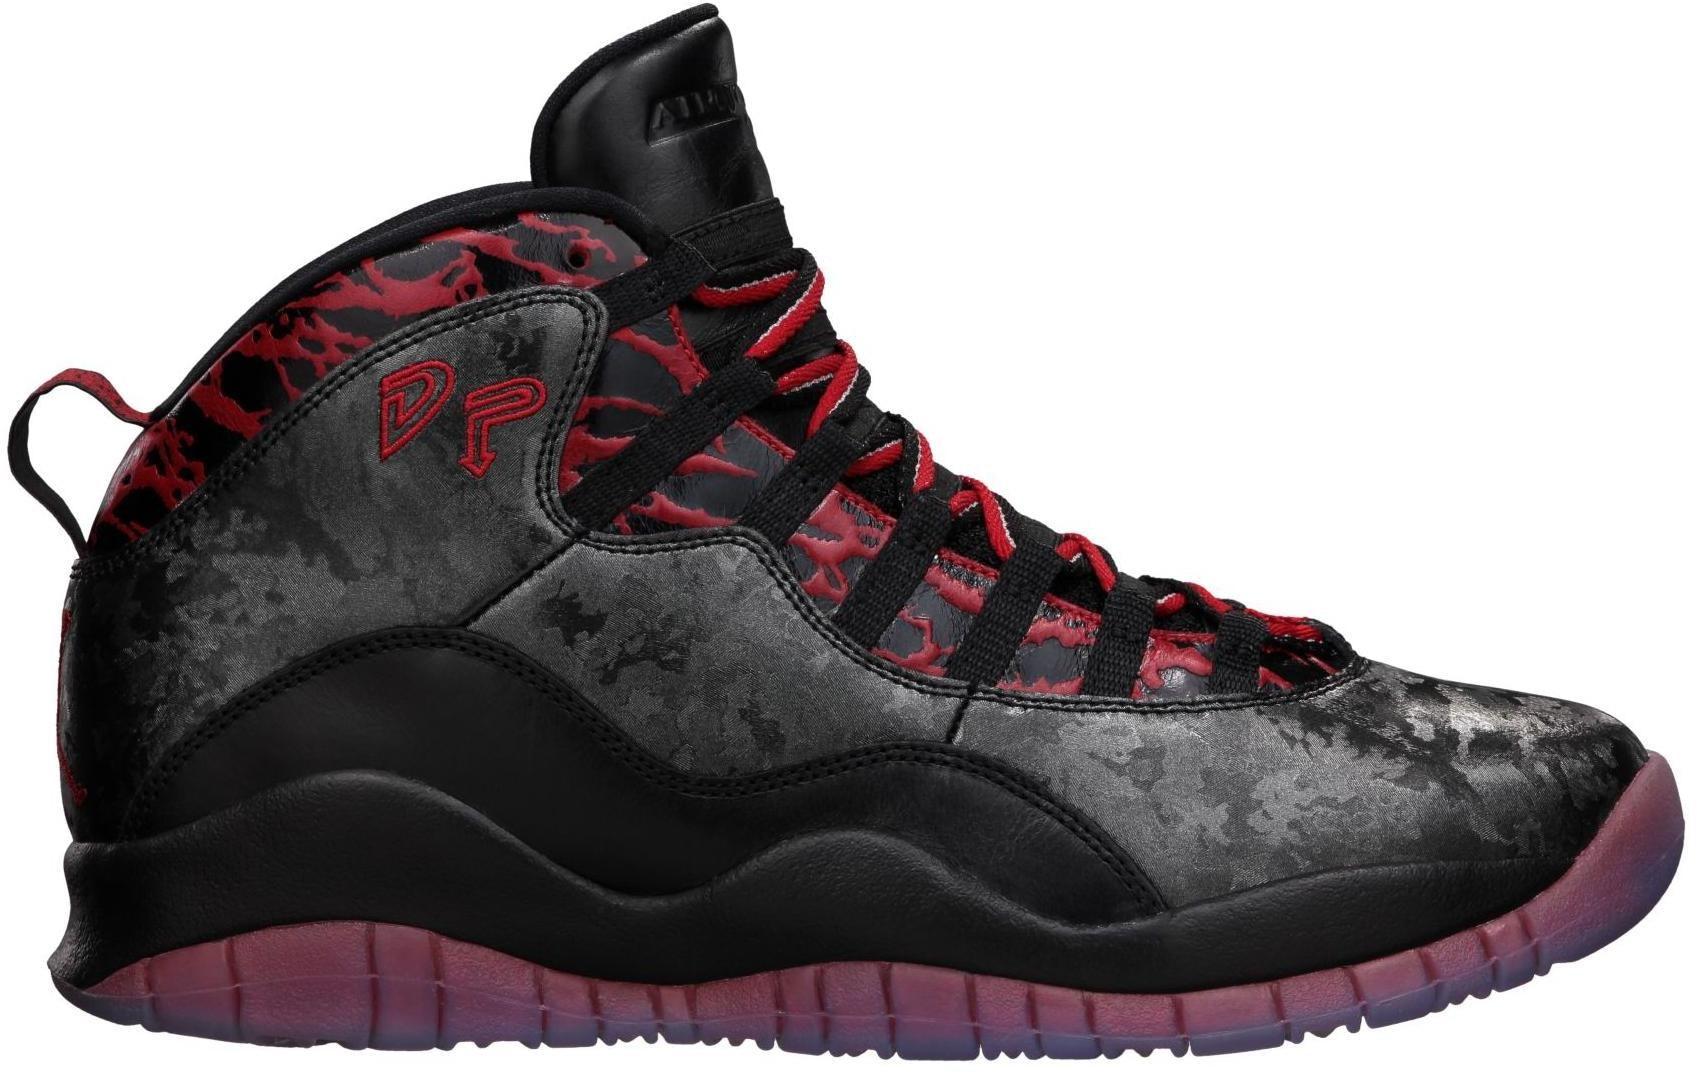 b43628c4c9c7 2015 Online Nike Air Jordan 10 Fusion Red Black Laser Orange ...